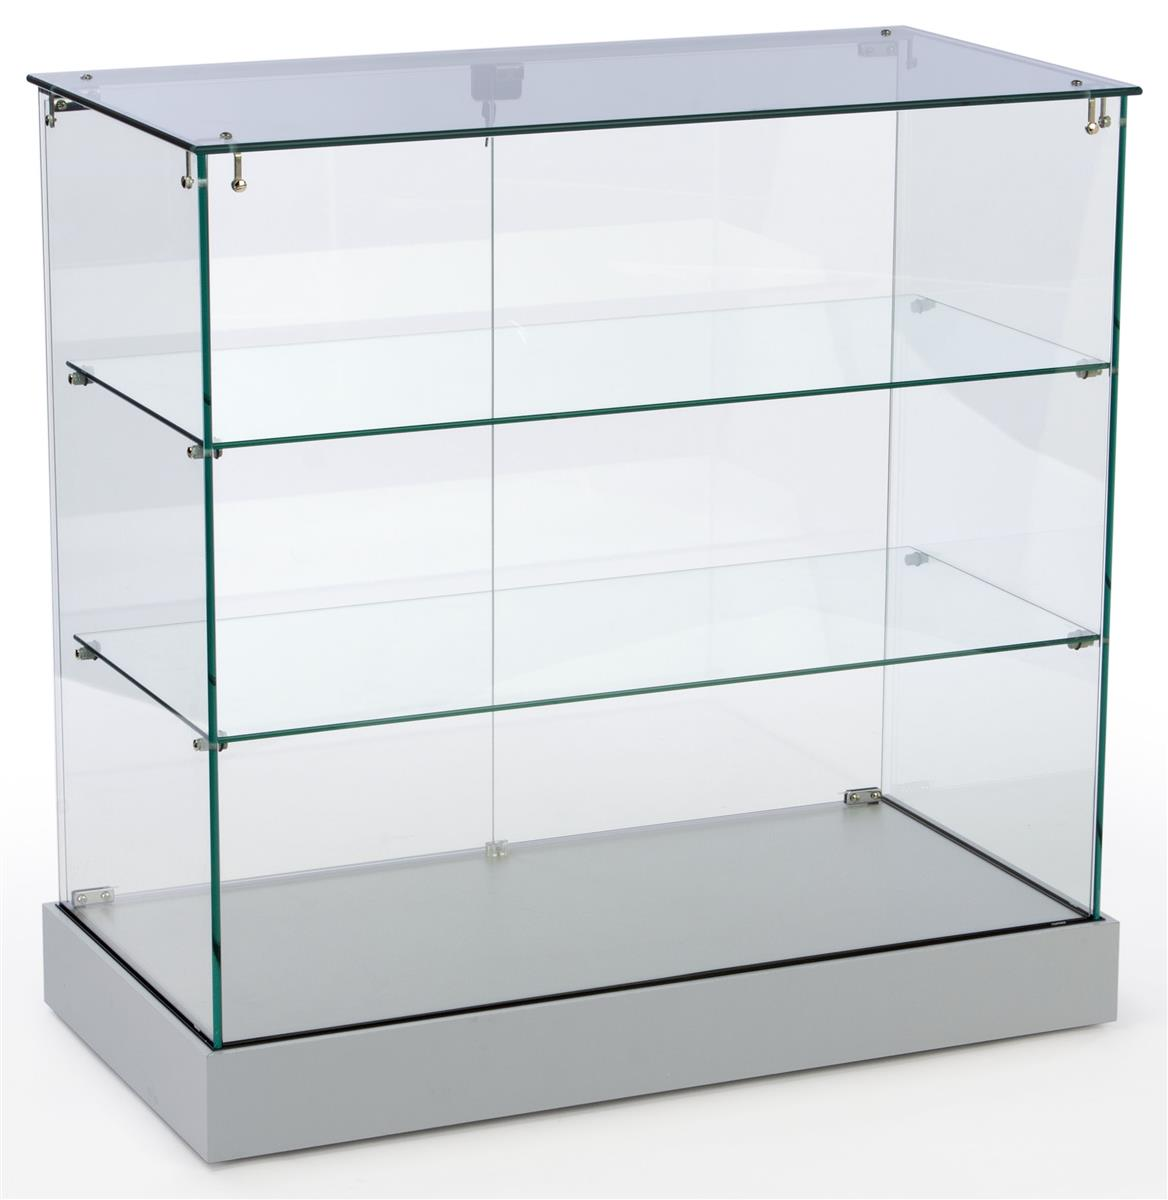 #235A4F Showcase Counter Locking Silver Cabinet Ships Unassembled with 1168x1200 px of Best Glass Display Cabinet Puchong 12001168 image @ avoidforclosure.info